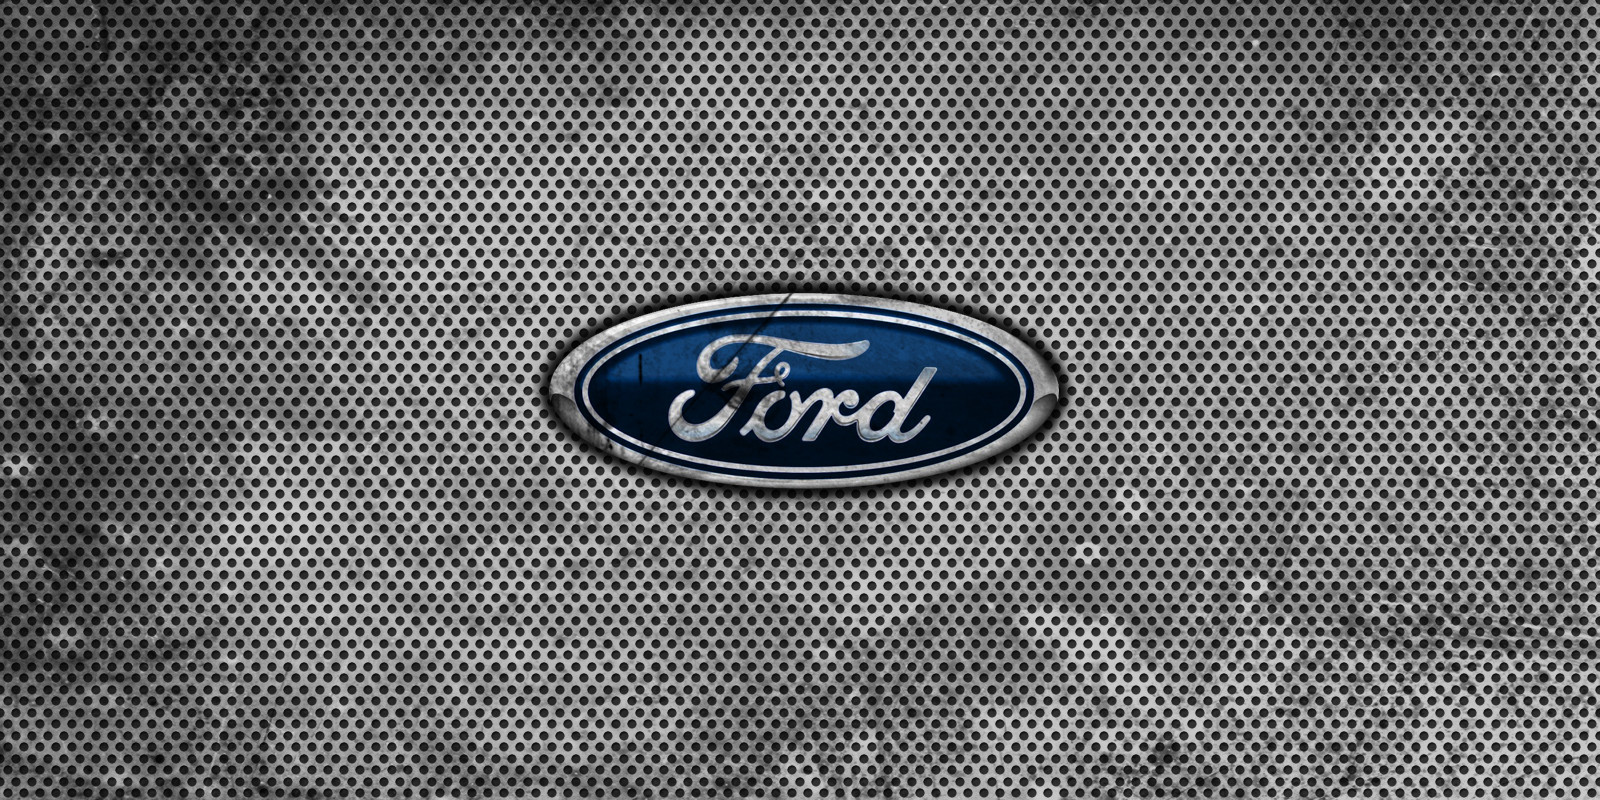 Wallpaper HD Ford Free Picture